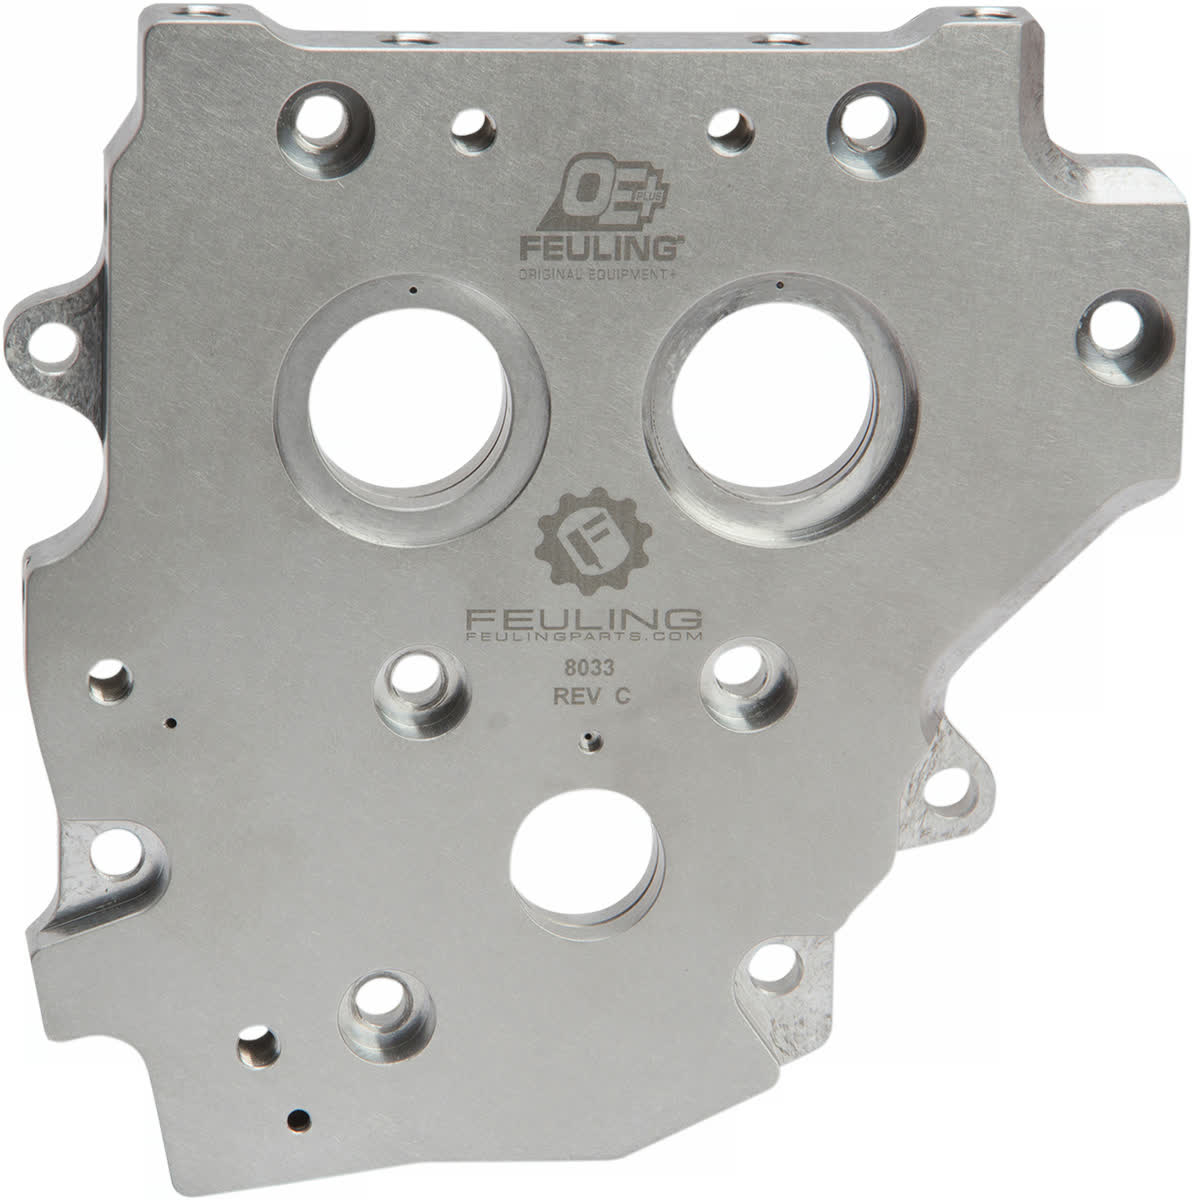 Feuling 8033 OE+ Cam Plate 07-17 Chain Or Gear Drive